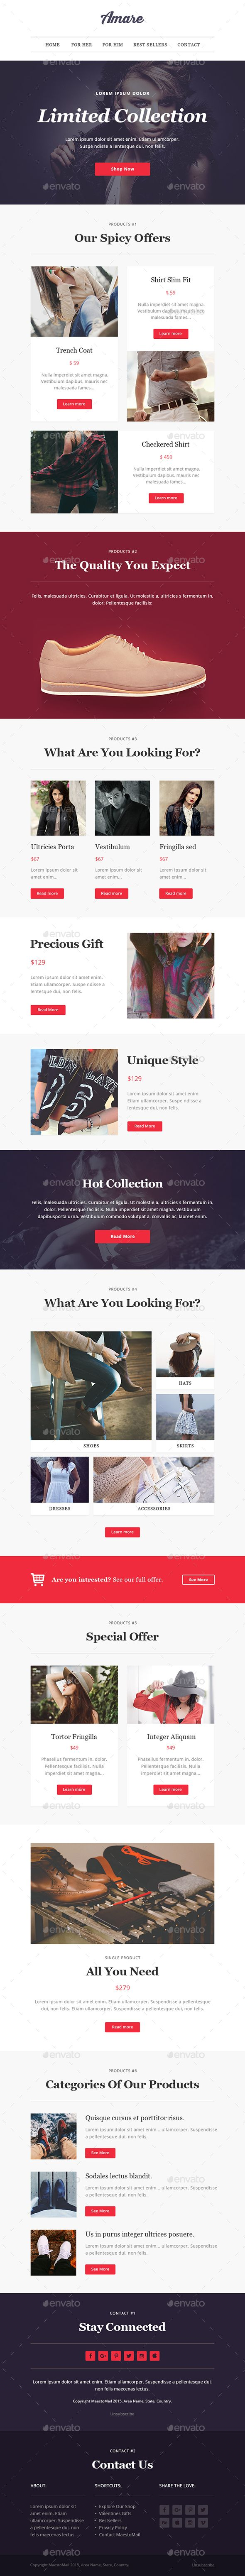 amare modern email newsletter template pinterest newsletter